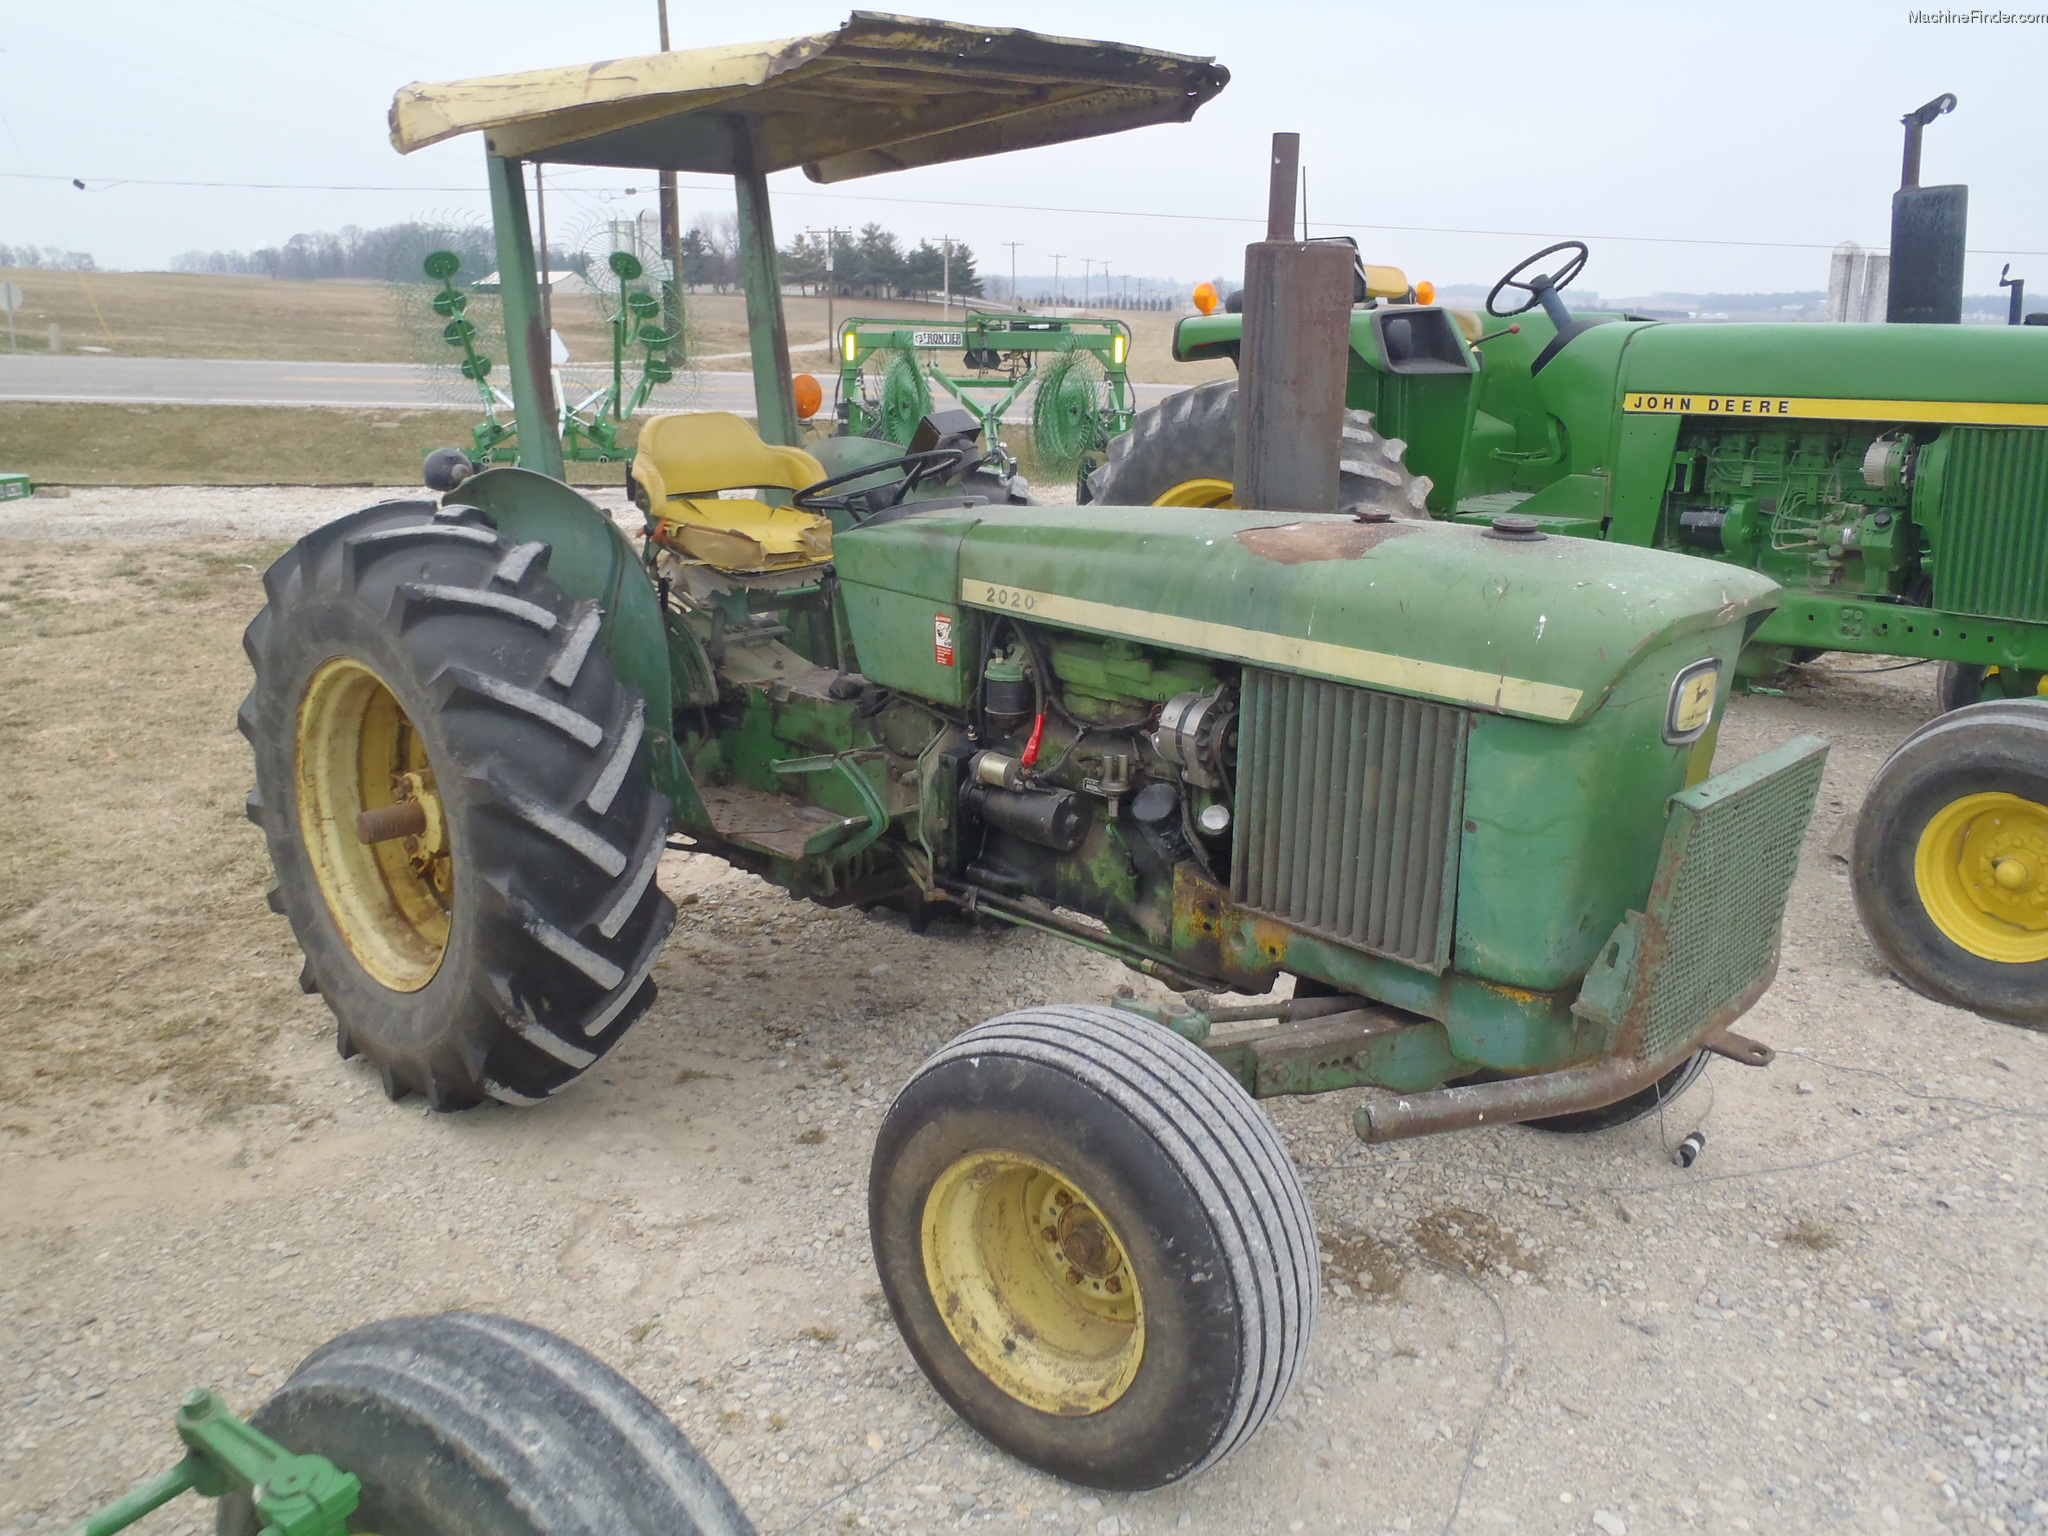 John Deere 2020 Tractor More Tractors Antique Wiring Harness Restoration Supply 2 Cylinder Parts